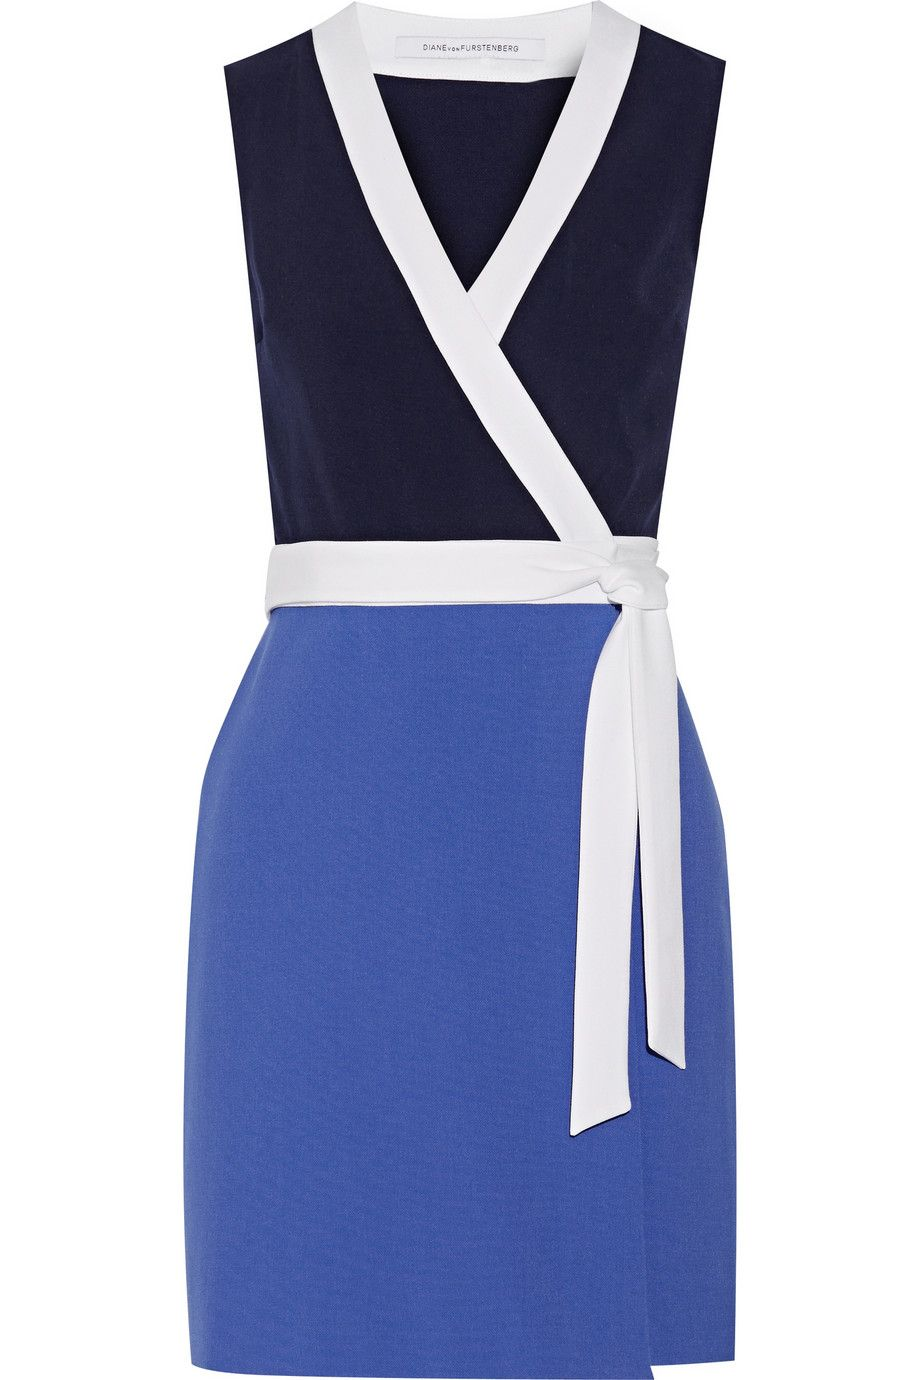 "Diane von Furstenburg Gracie Color-Block Stretch-Crepe Mini Dress, $400&#x3B; <a href=""http://www.net-a-porter.com/us/en/product/502773"">net-a-porter.com</a>